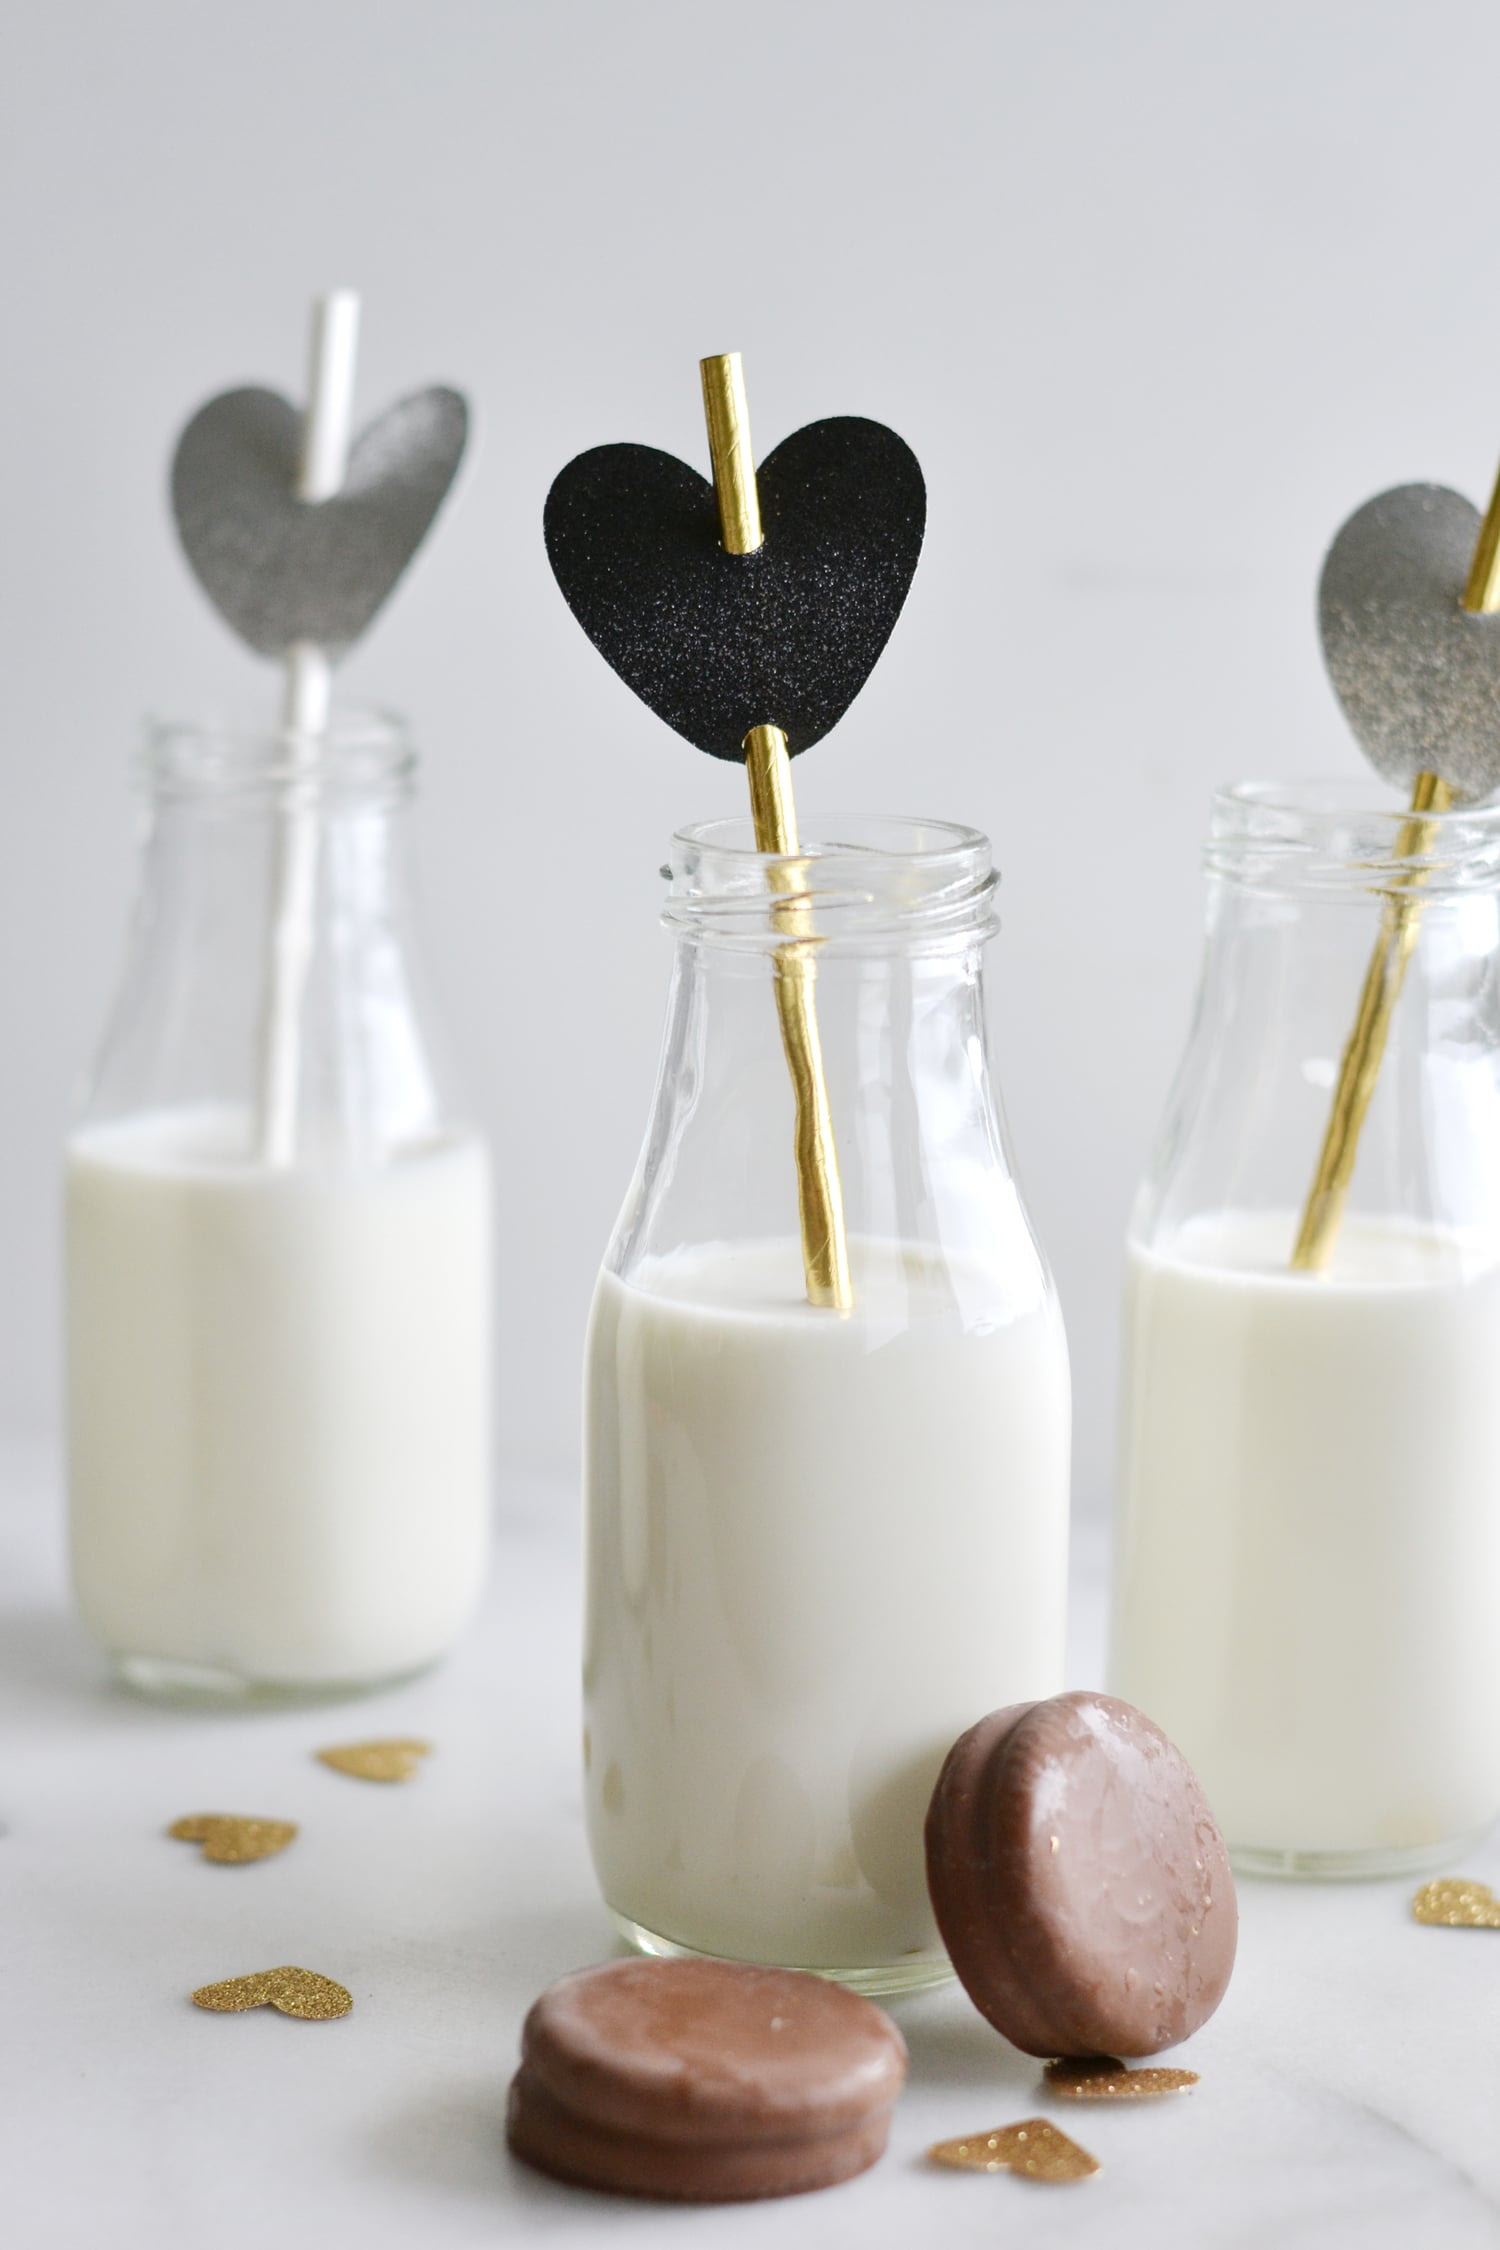 Cute+milk+and+cookies+party+with+hearts+and+paper+straws+for+Valentine's+Day+-+Boxwood+Avenue+(Cricut+Project)